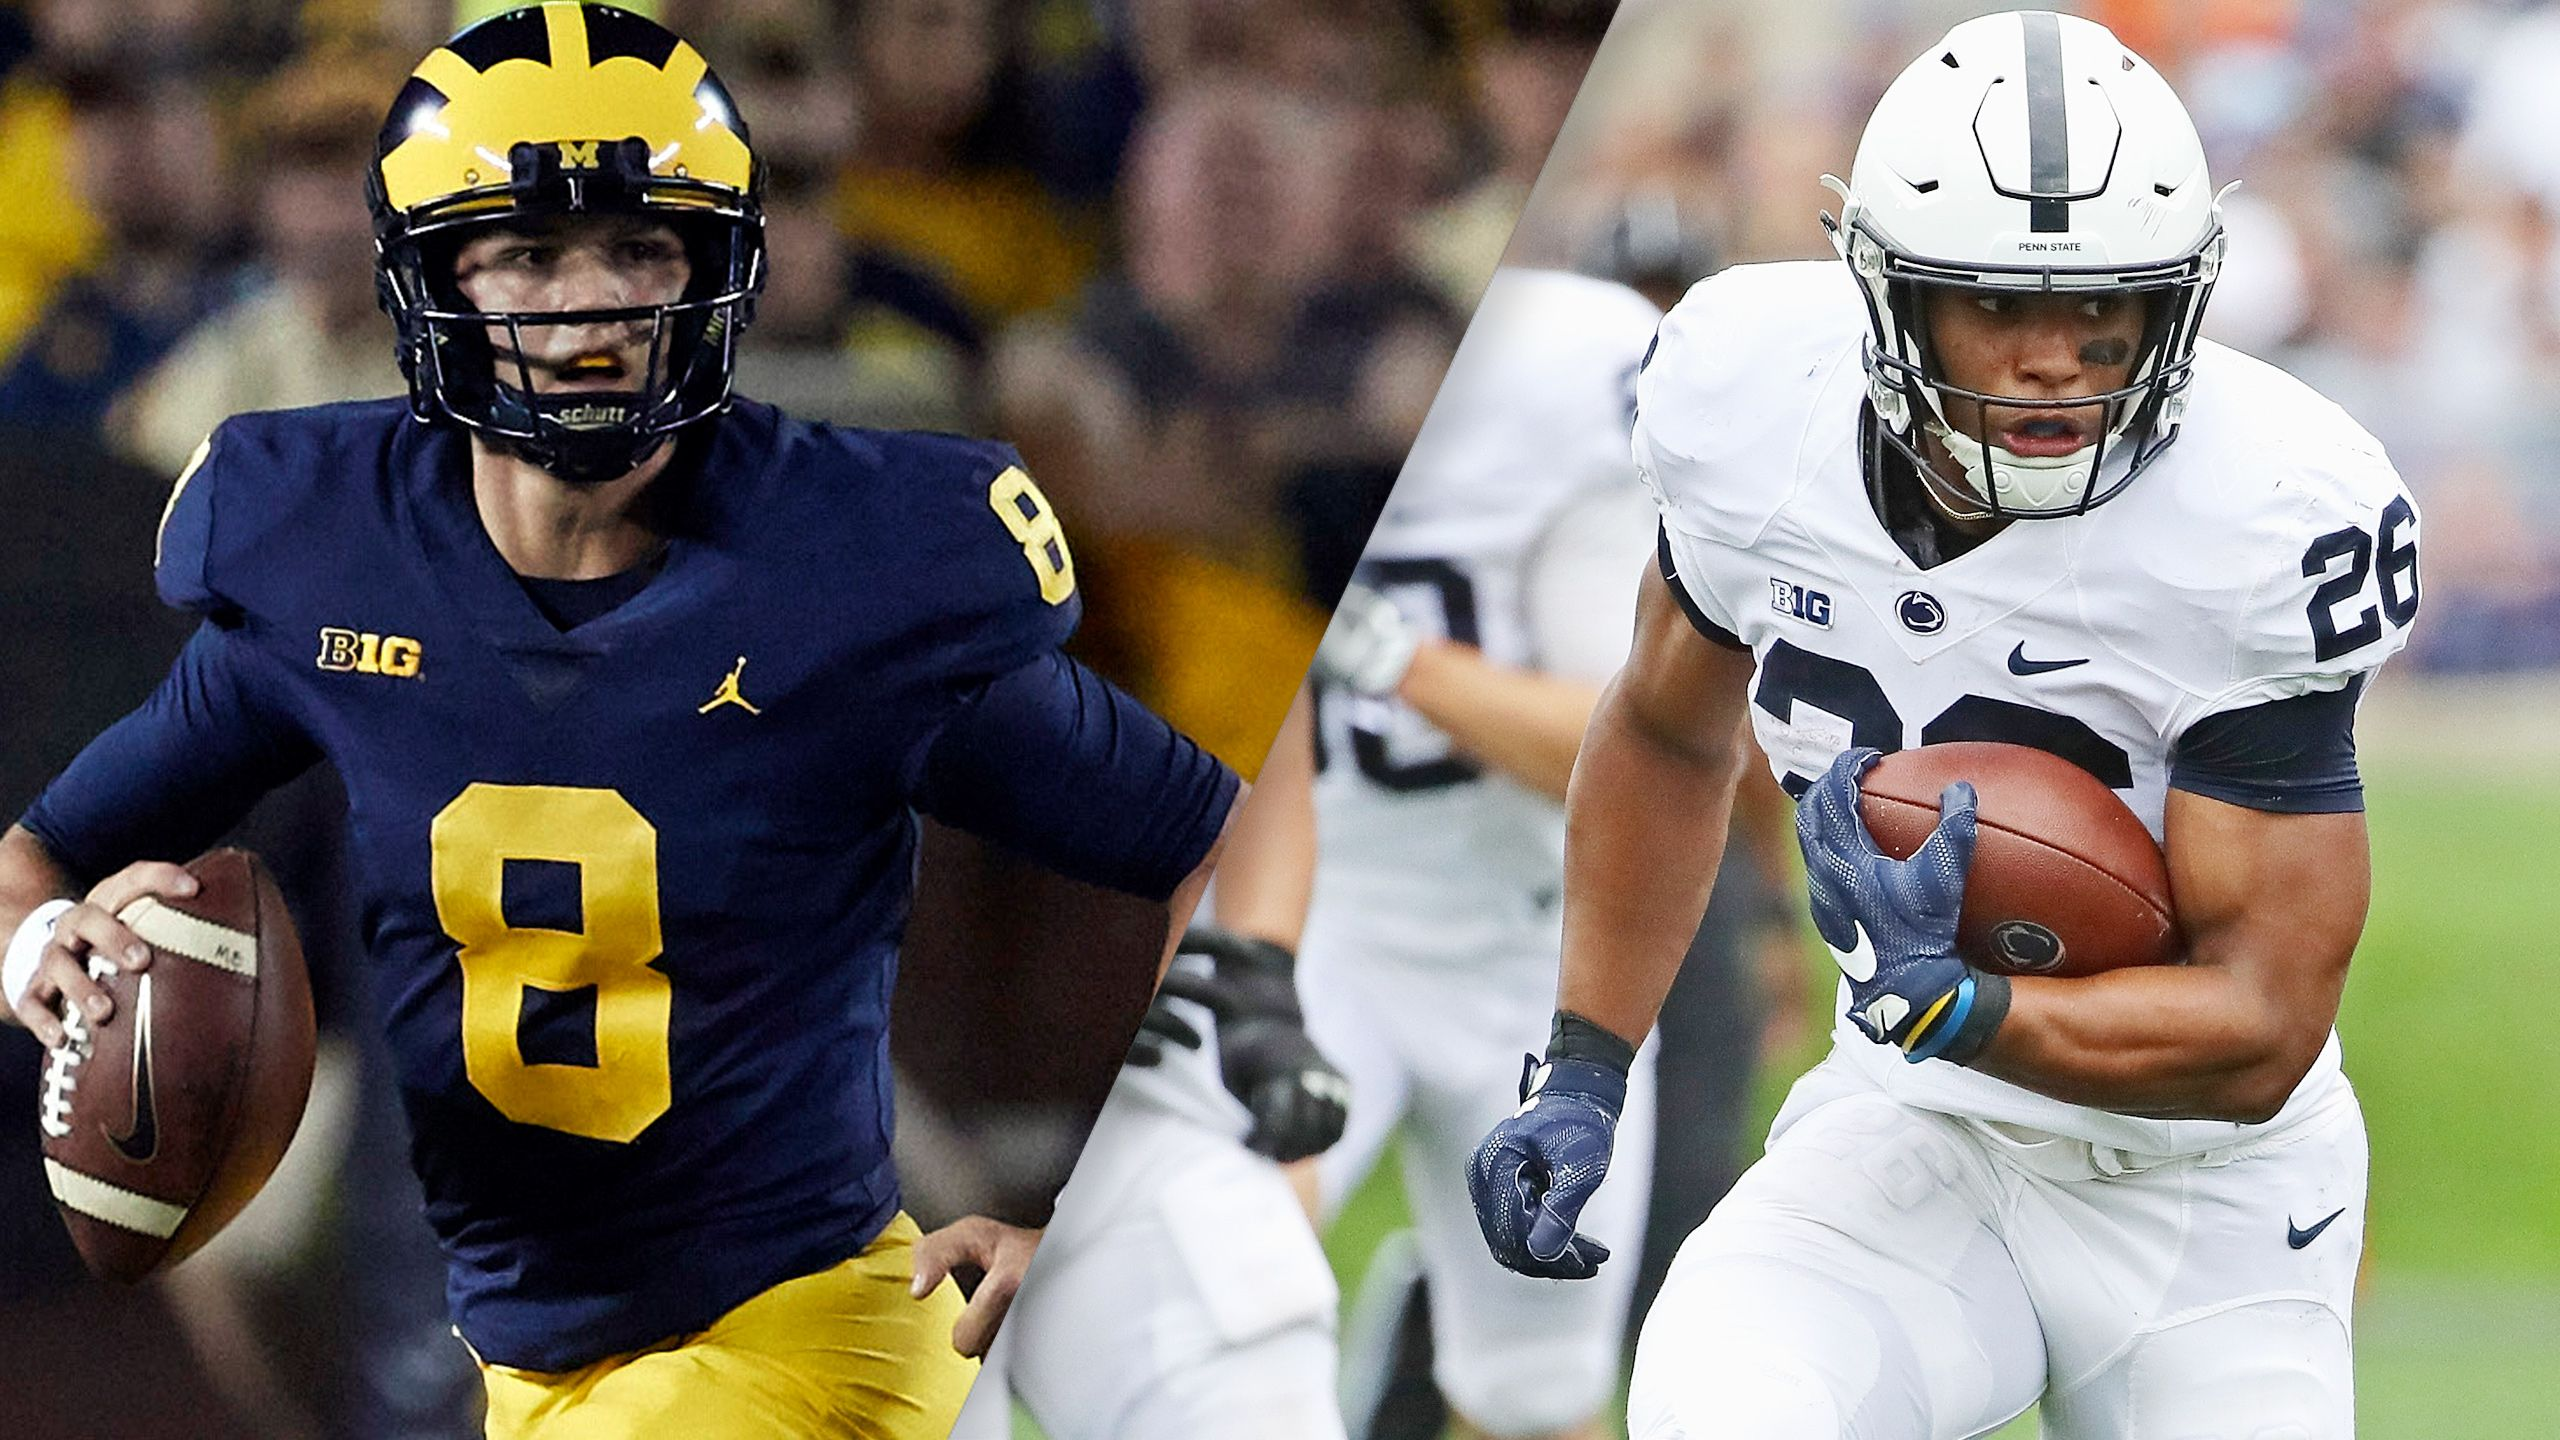 Michigan vs. Penn State (Football) (re-air)